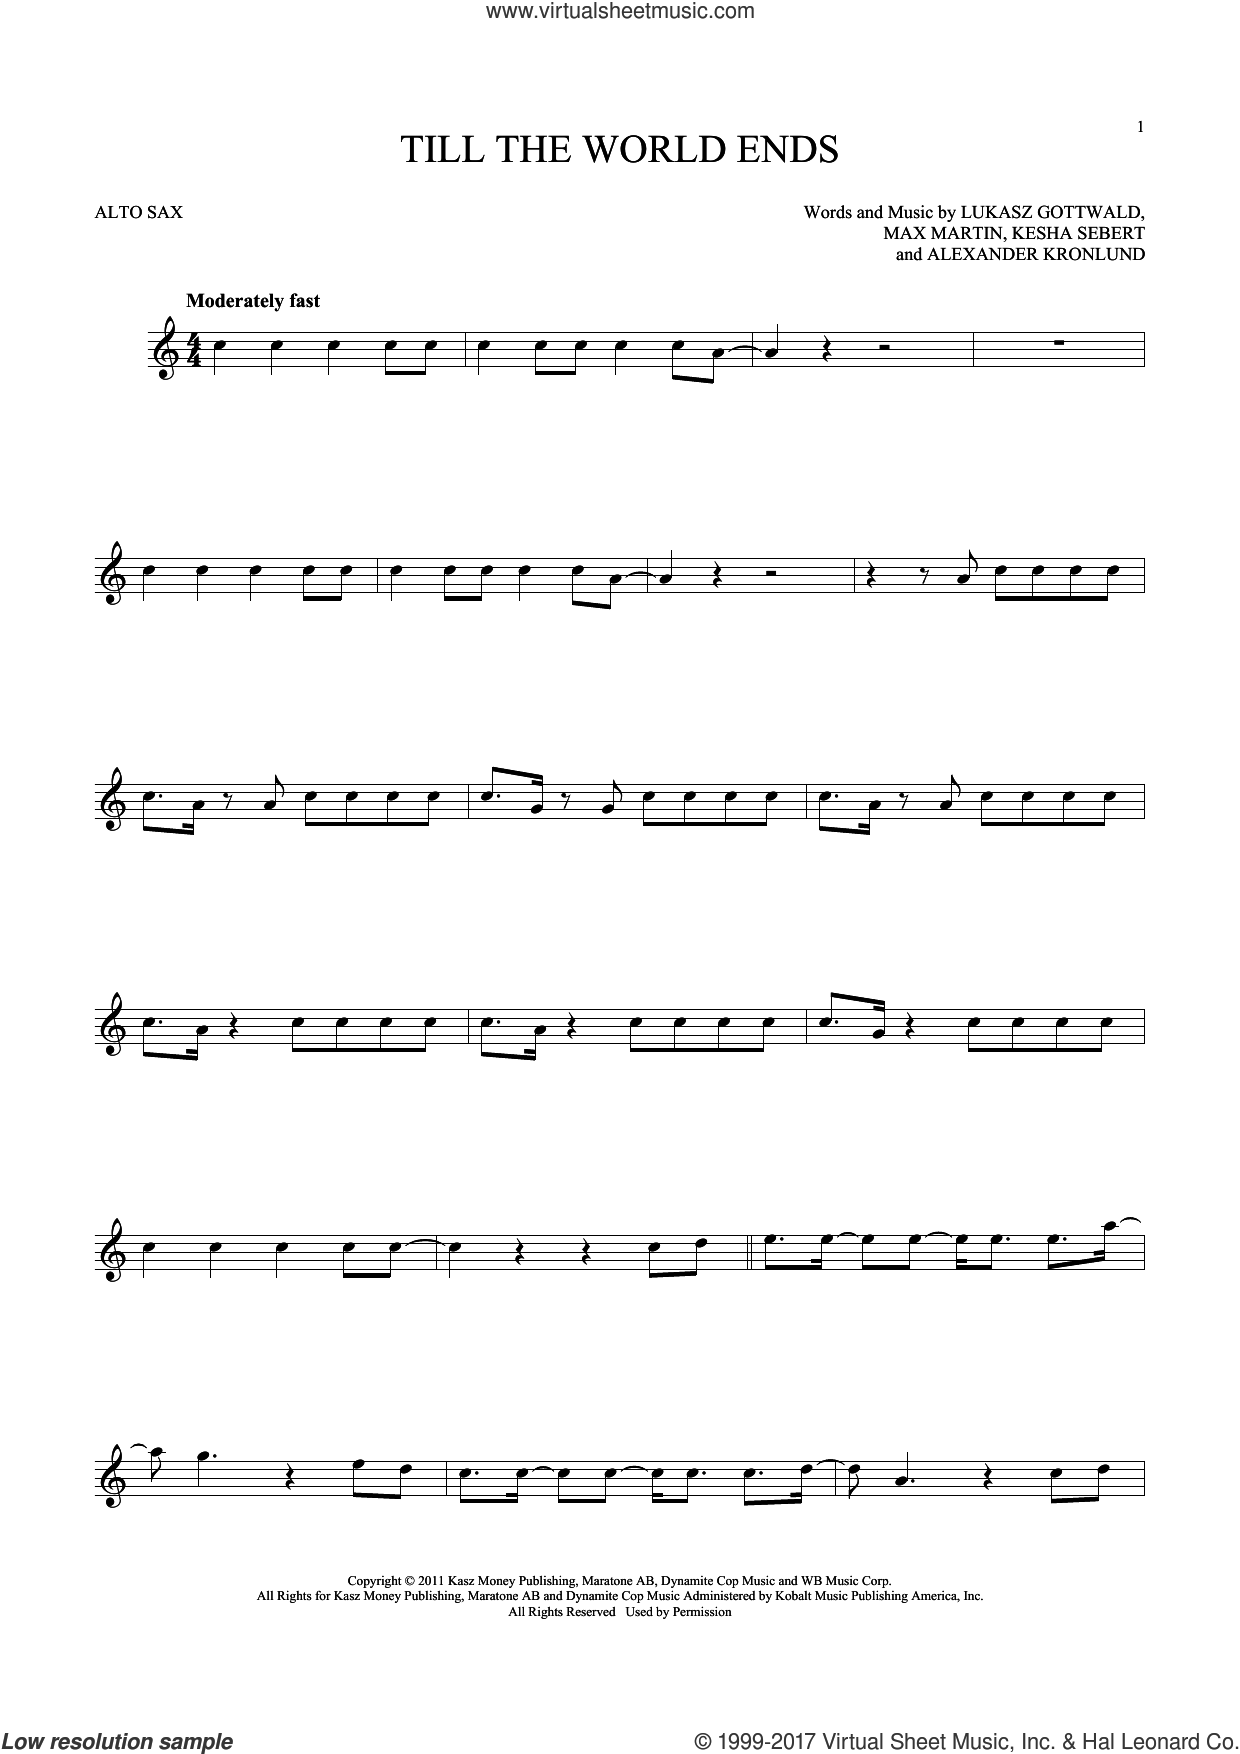 Till The World Ends sheet music for alto saxophone solo ( Sax) by Max Martin, Britney Spears, Alexander Kronlund, Kesha Sebert and Lukasz Gottwald. Score Image Preview.